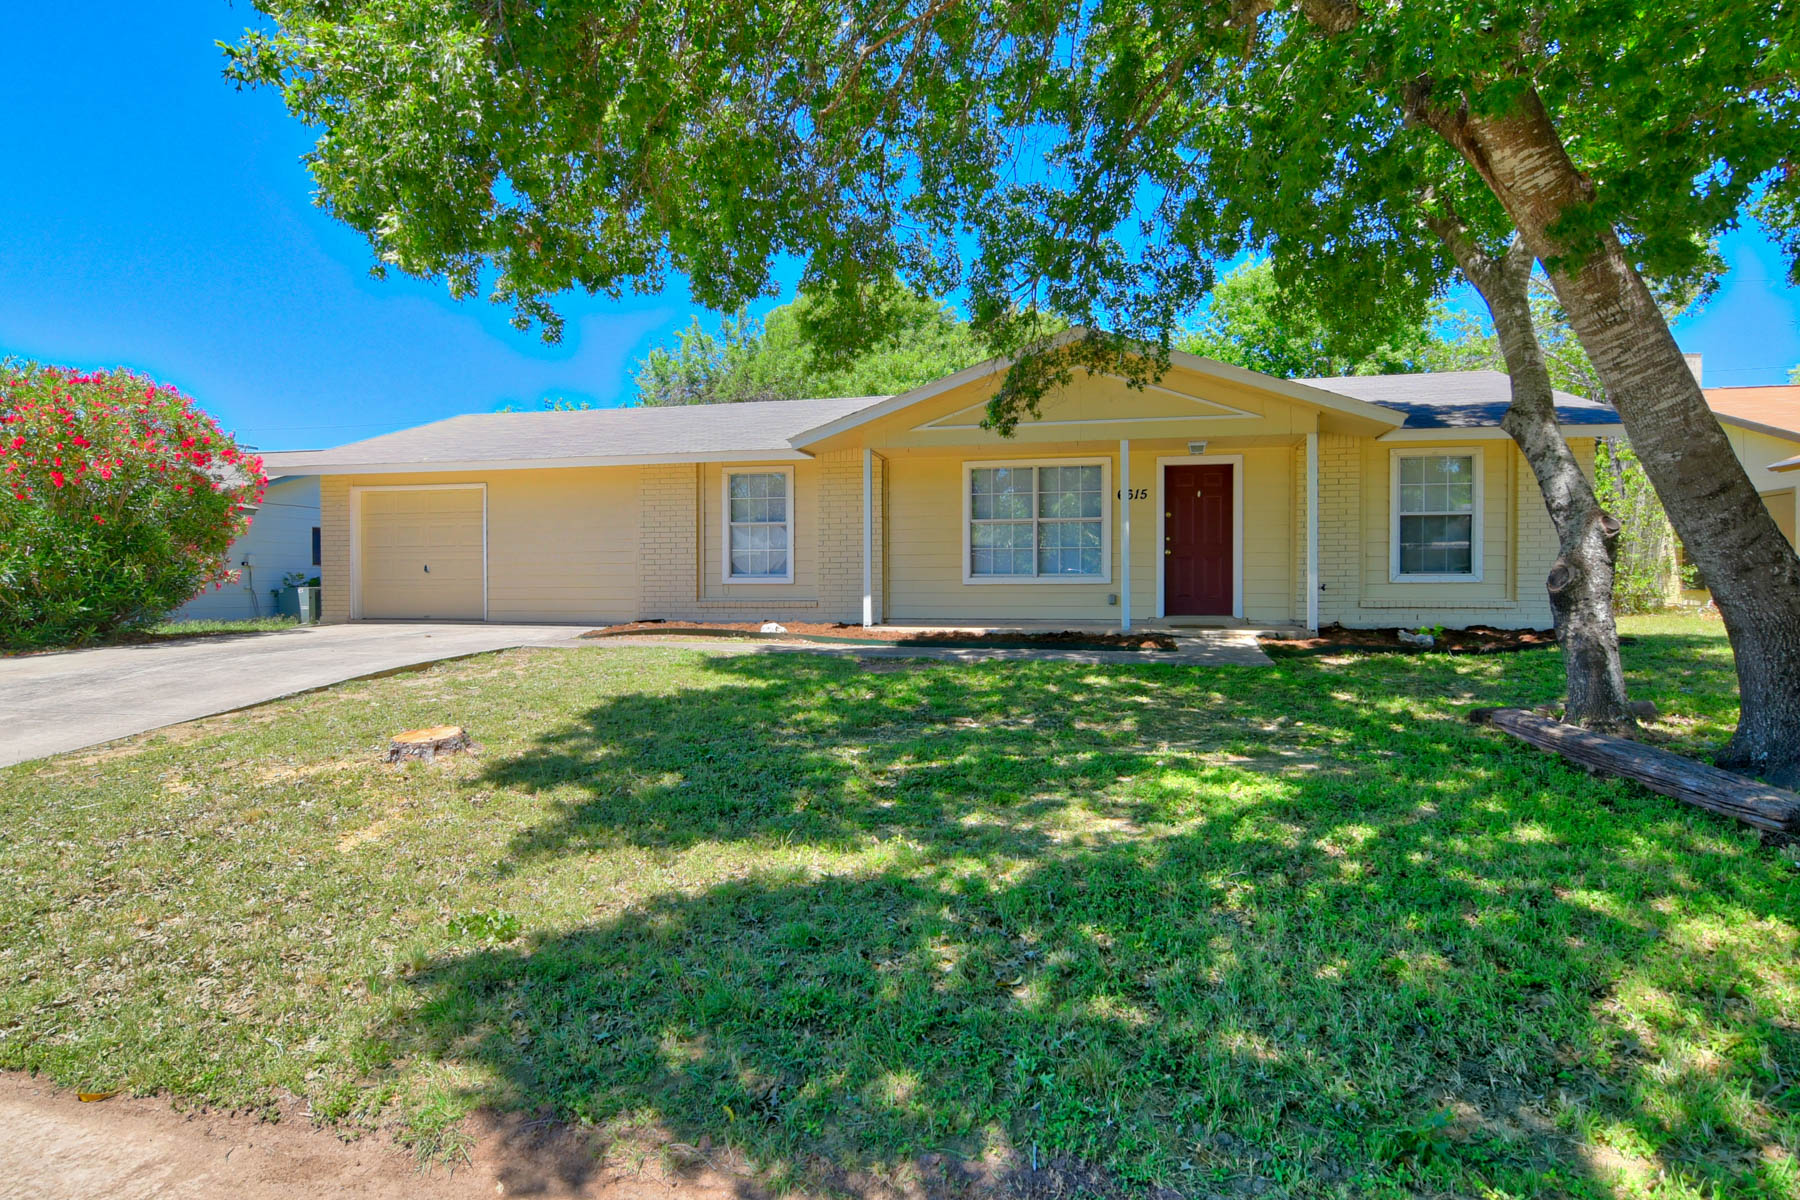 Single Family Home for Rent at Beautiful Home in a Quiet Neighborhood 6615 Spring Haven St San Antonio, Texas 78249 United States